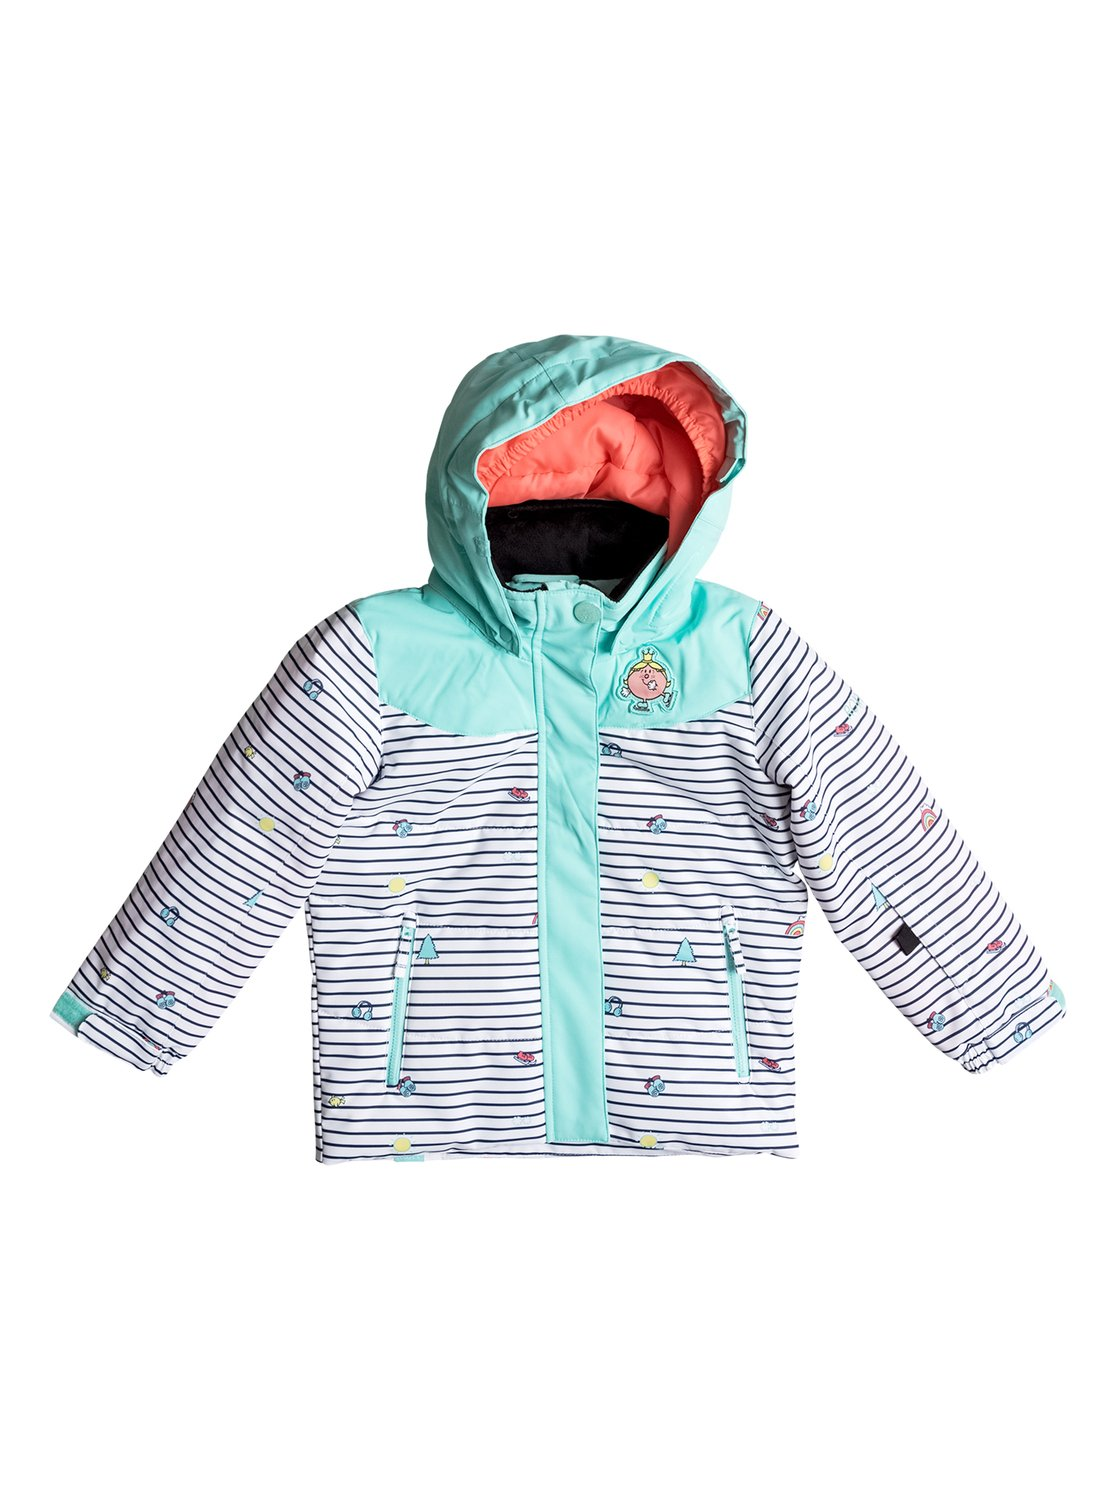 Anna Little Miss - Veste de snow pour Fille - Roxy